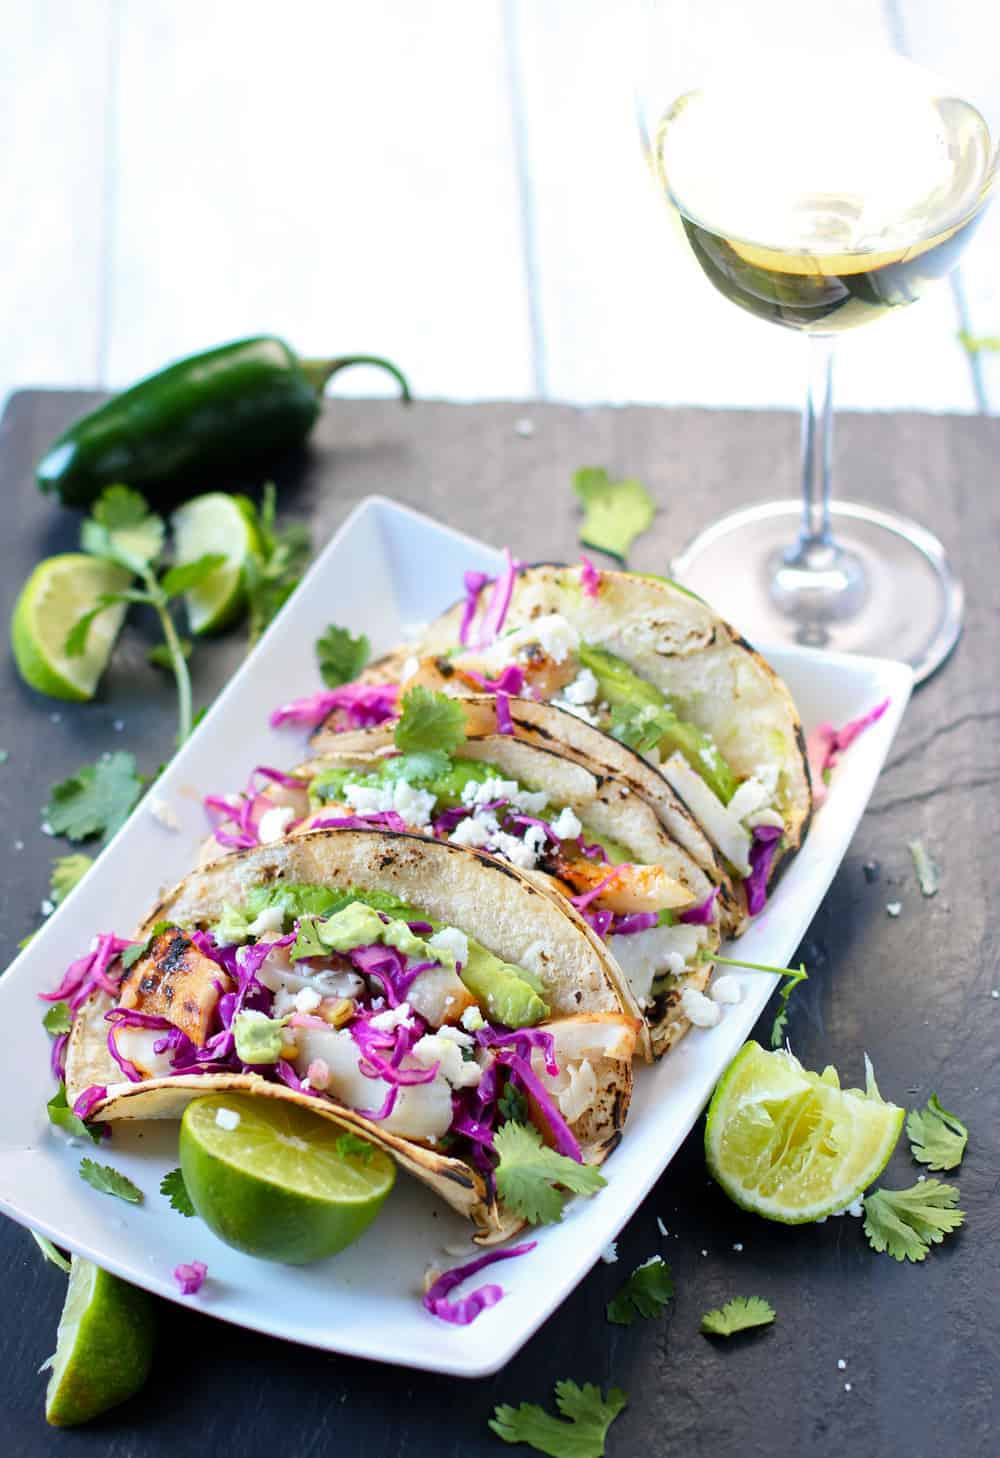 Grilled Fish Tacos on a white plate garnished with limes and cilantro, and Wine Pairing